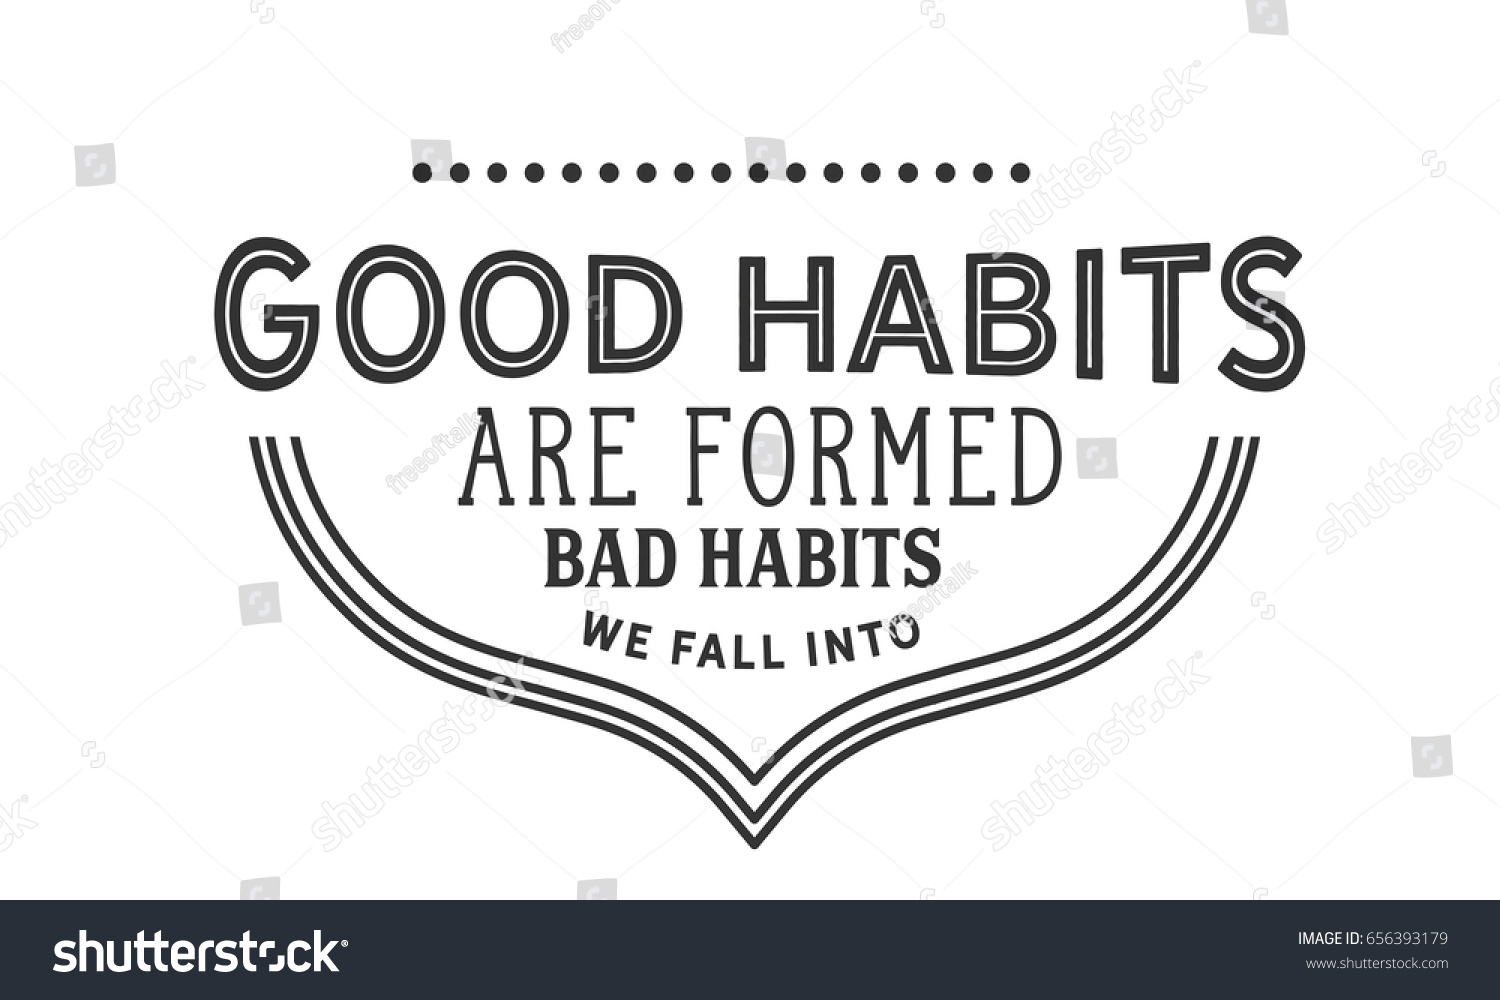 Habit Quotes Good Habits Formed Bad Habits We Stock Vector 656393179  Shutterstock